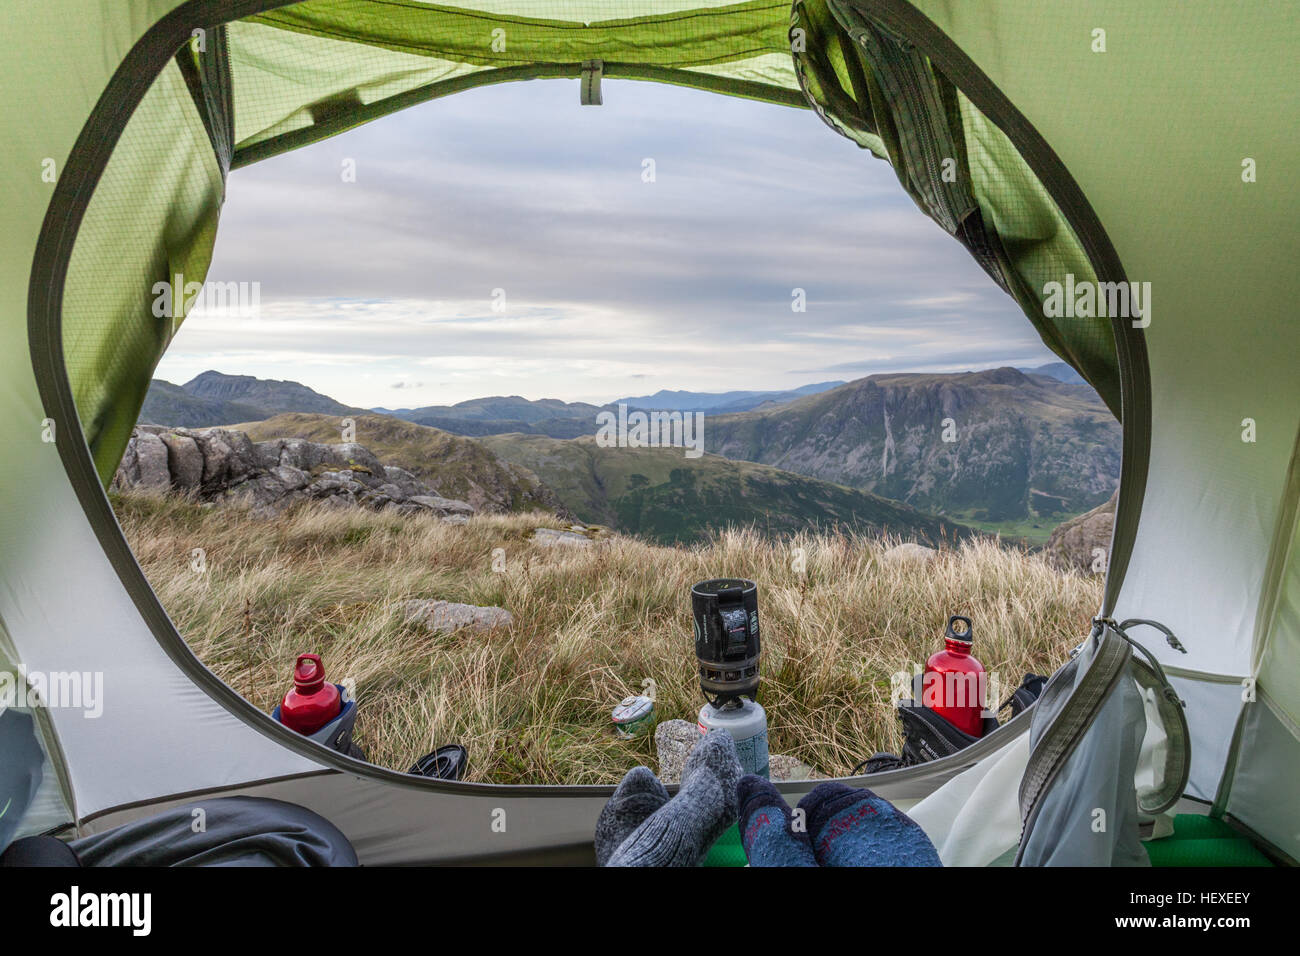 Room with a view - Wild camping couple pair of feet, looking out of tent porch to Langdale Pikes in the English - Stock Image